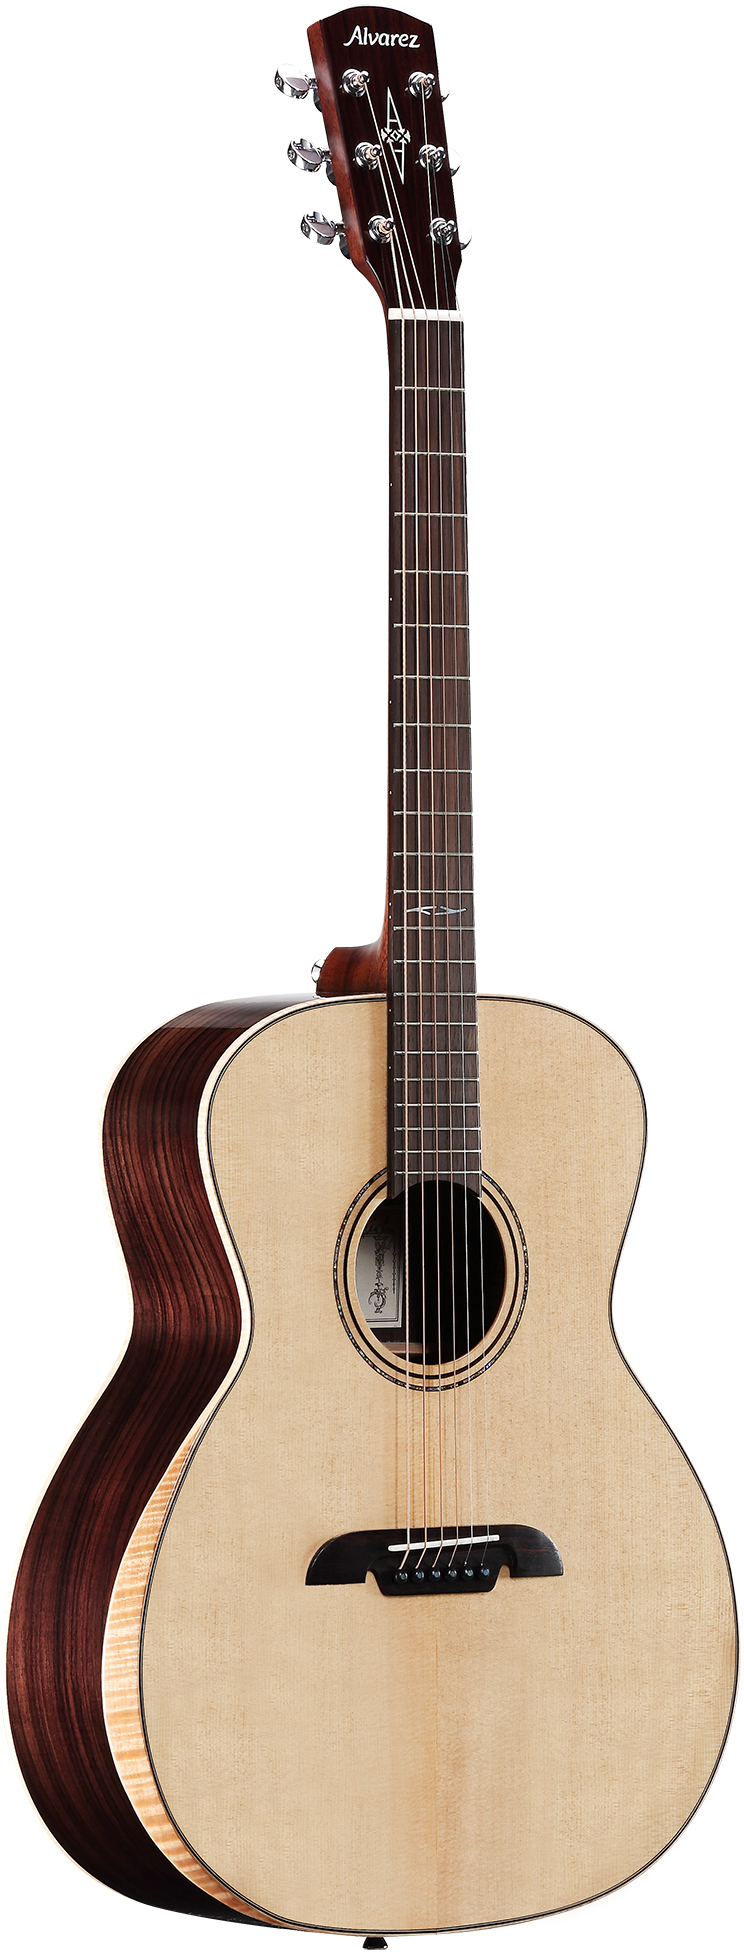 Alvarez Guitars AG70 AR (natural)